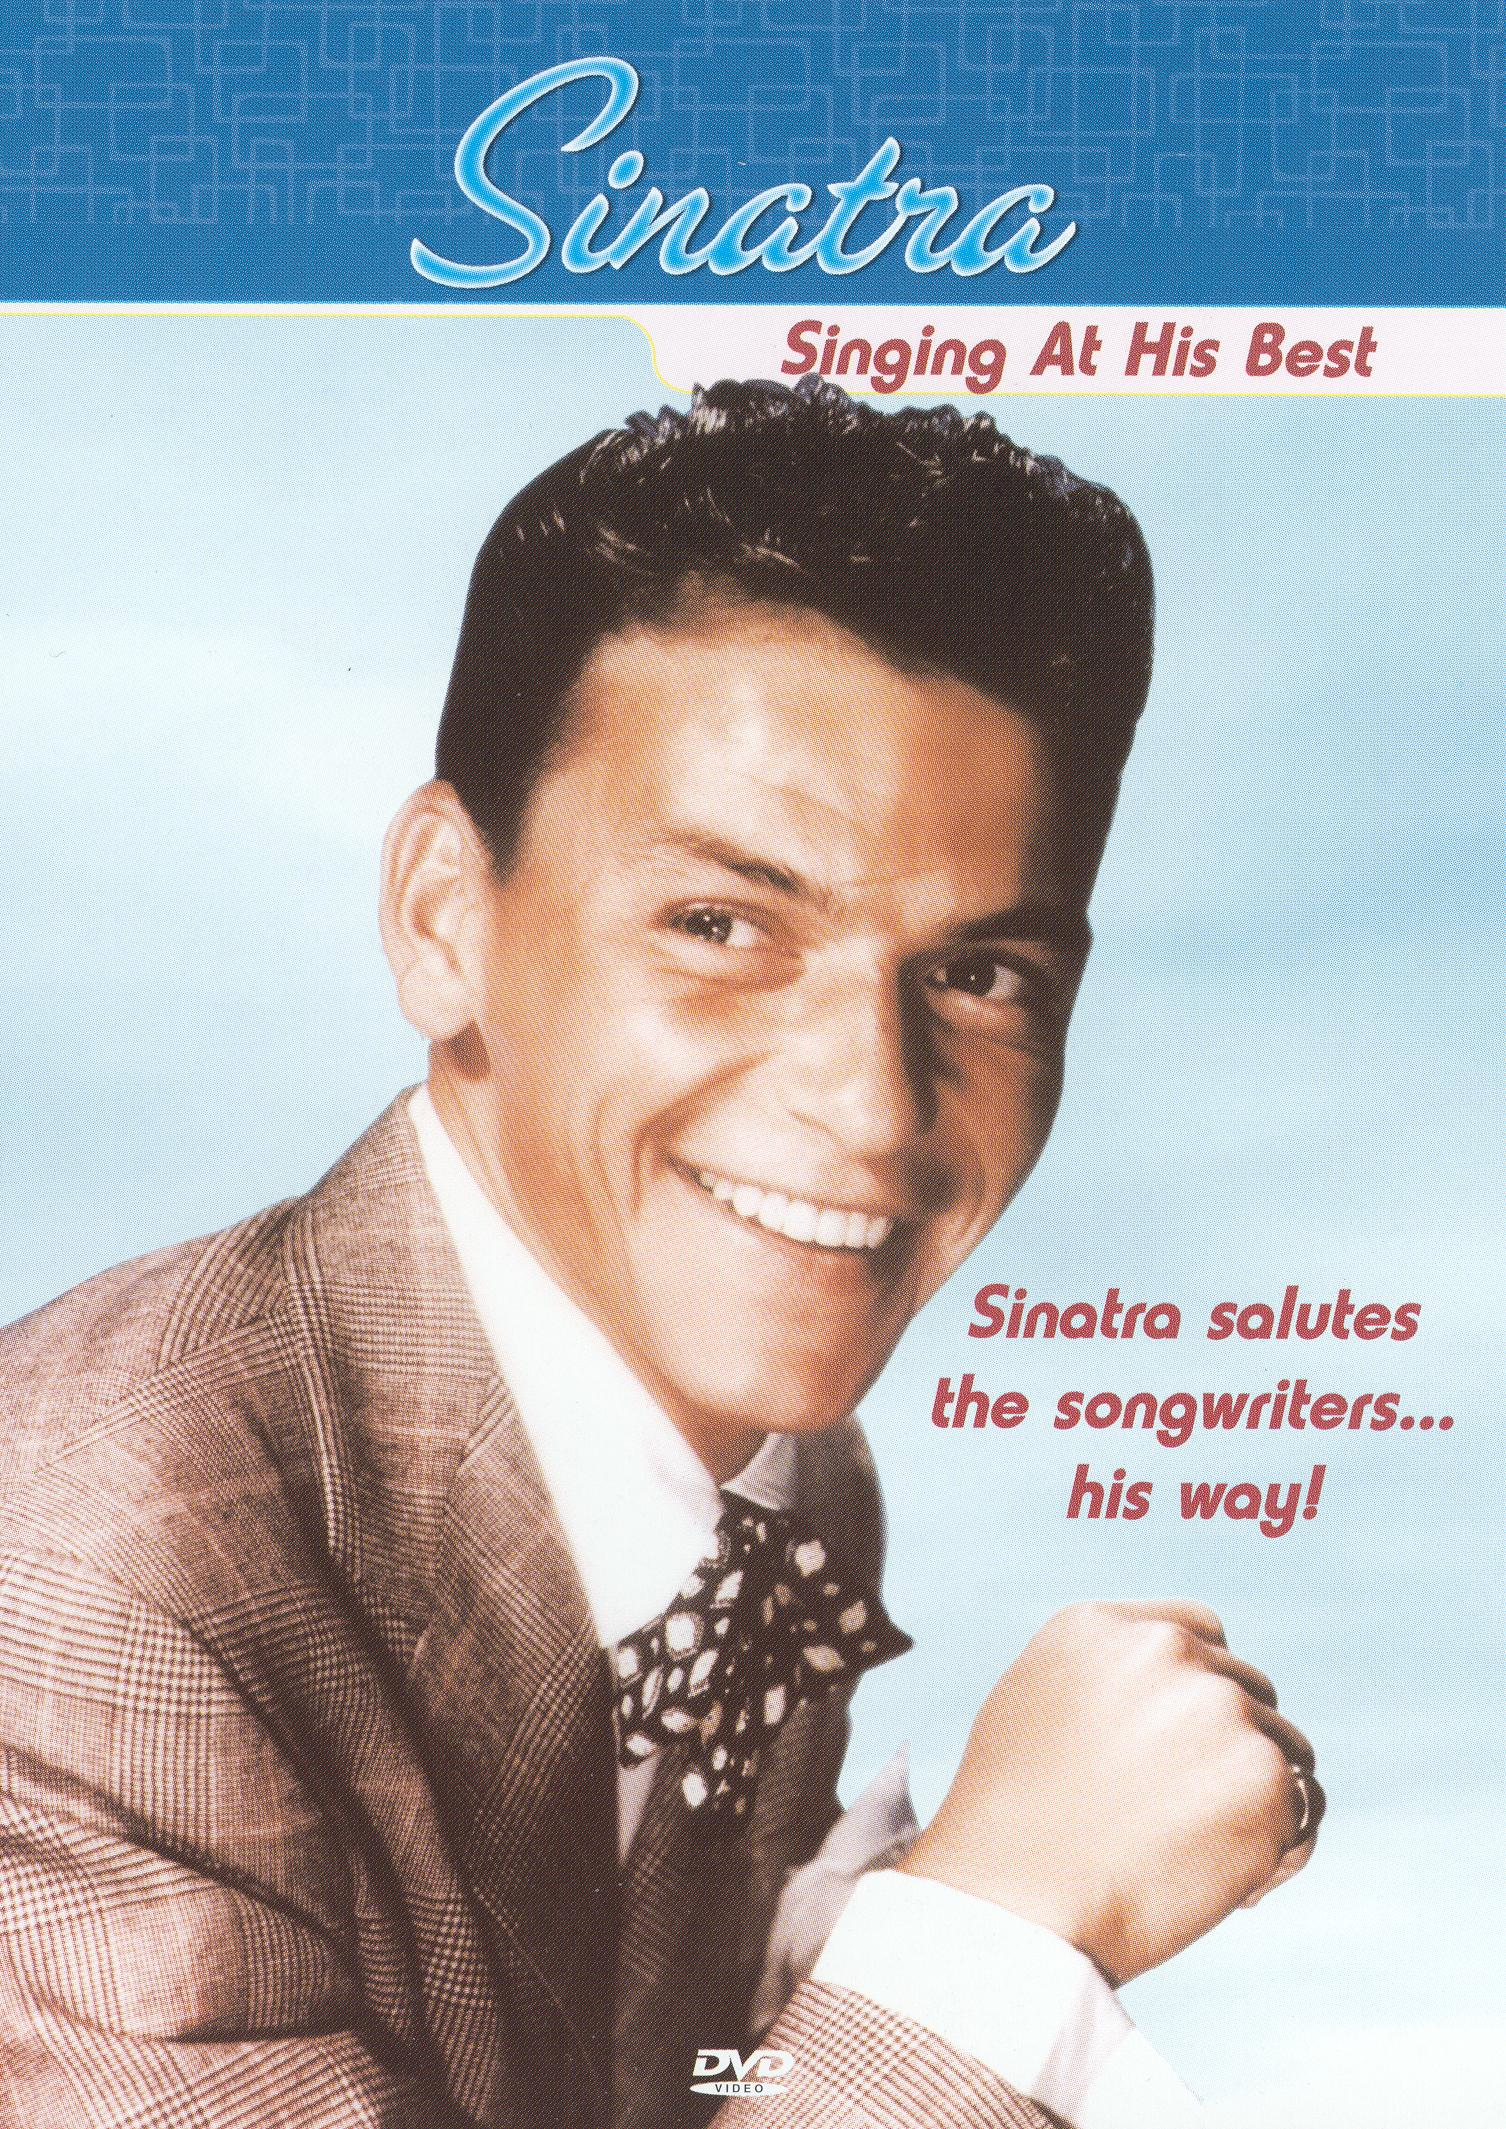 Sinatra Singing at His Best